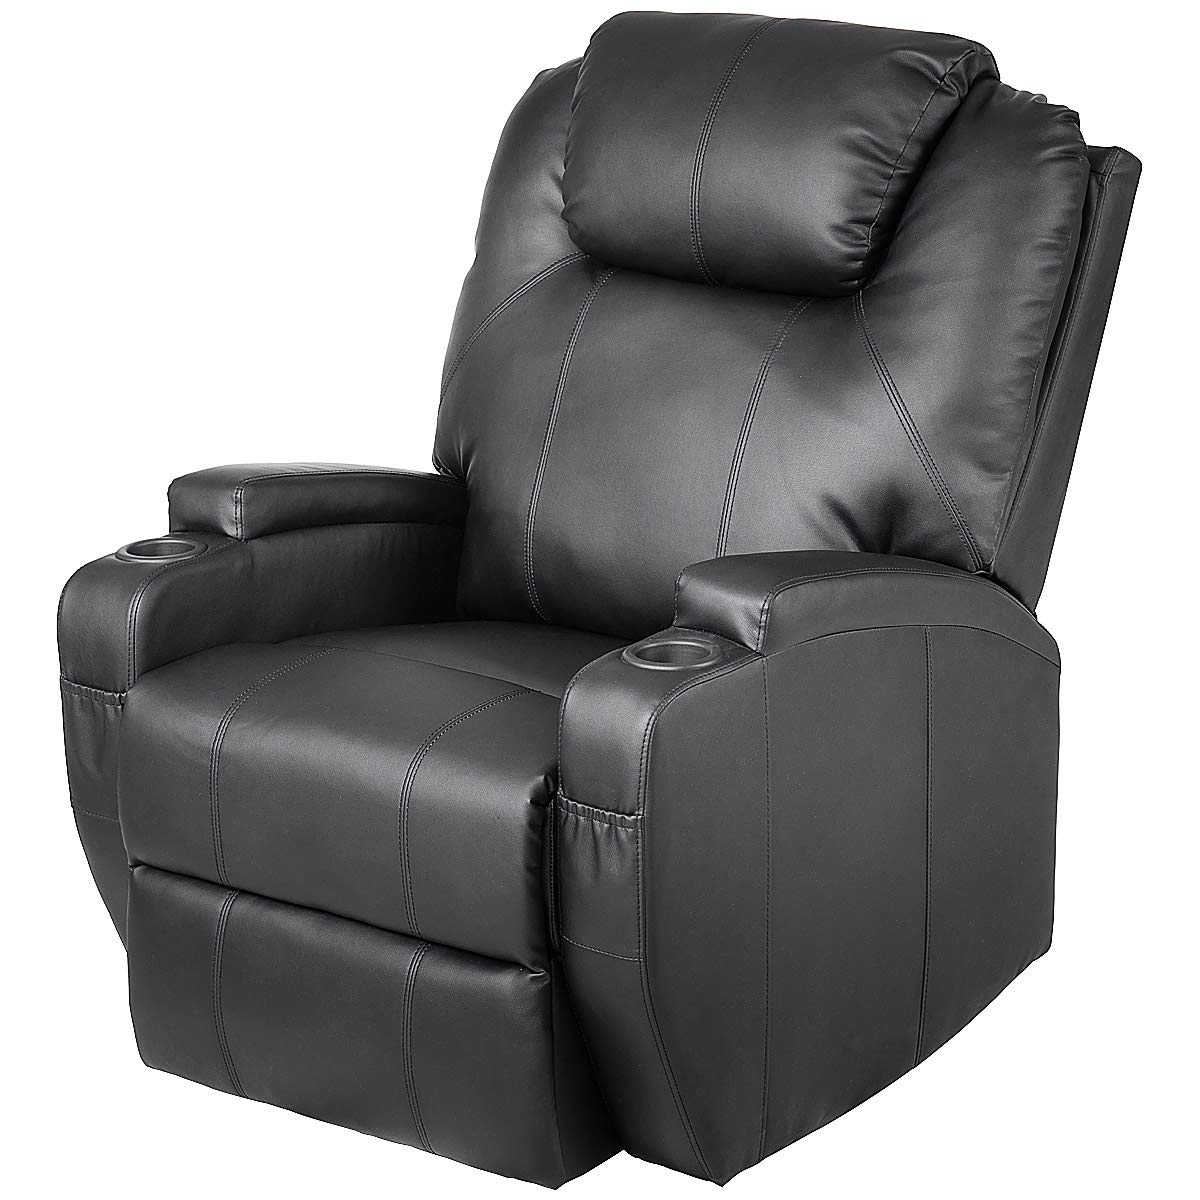 TANGKULA Massage Recliner Chair, Deluxe Ergonomic Adjustable Design PU Leather Heated Vibrating 2 Cup Holders, Side Pouch, Remote Control Living Room Home Theater, Recliner Seat AM1654HM